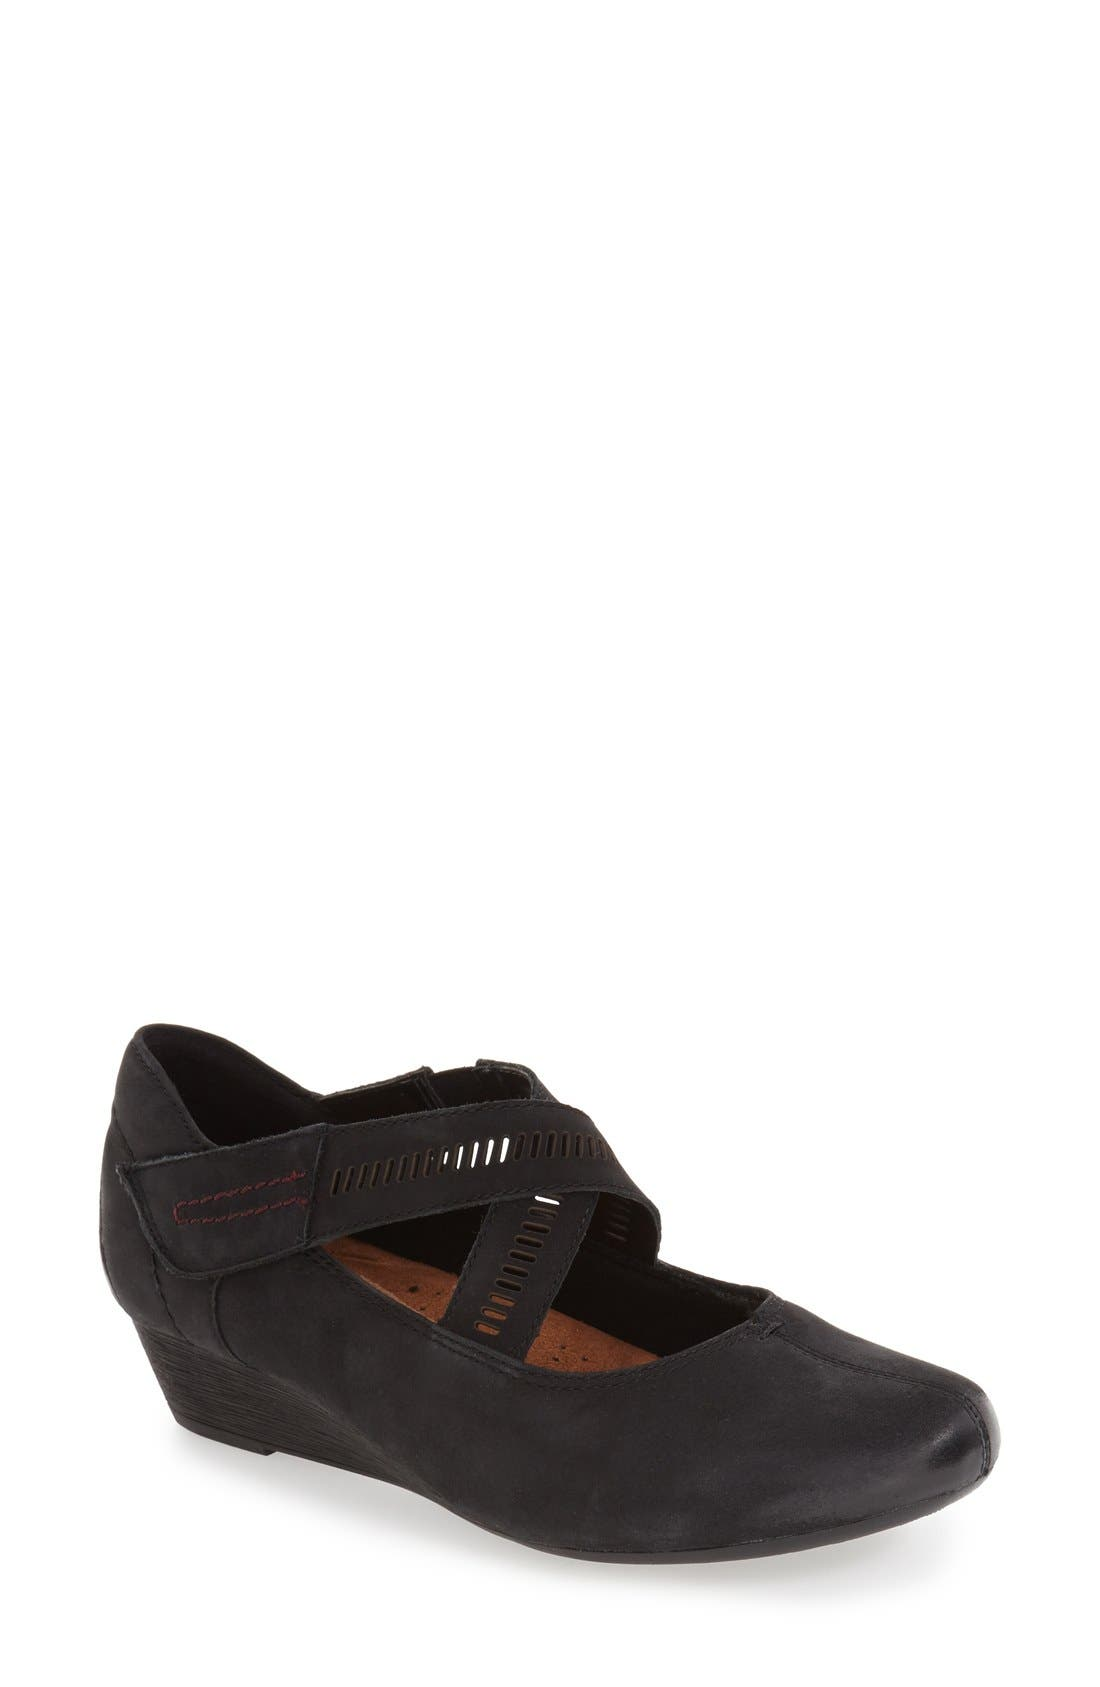 Alternate Image 1 Selected - Rockport Cobb Hill 'Janet' Mary Jane Wedge (Women)